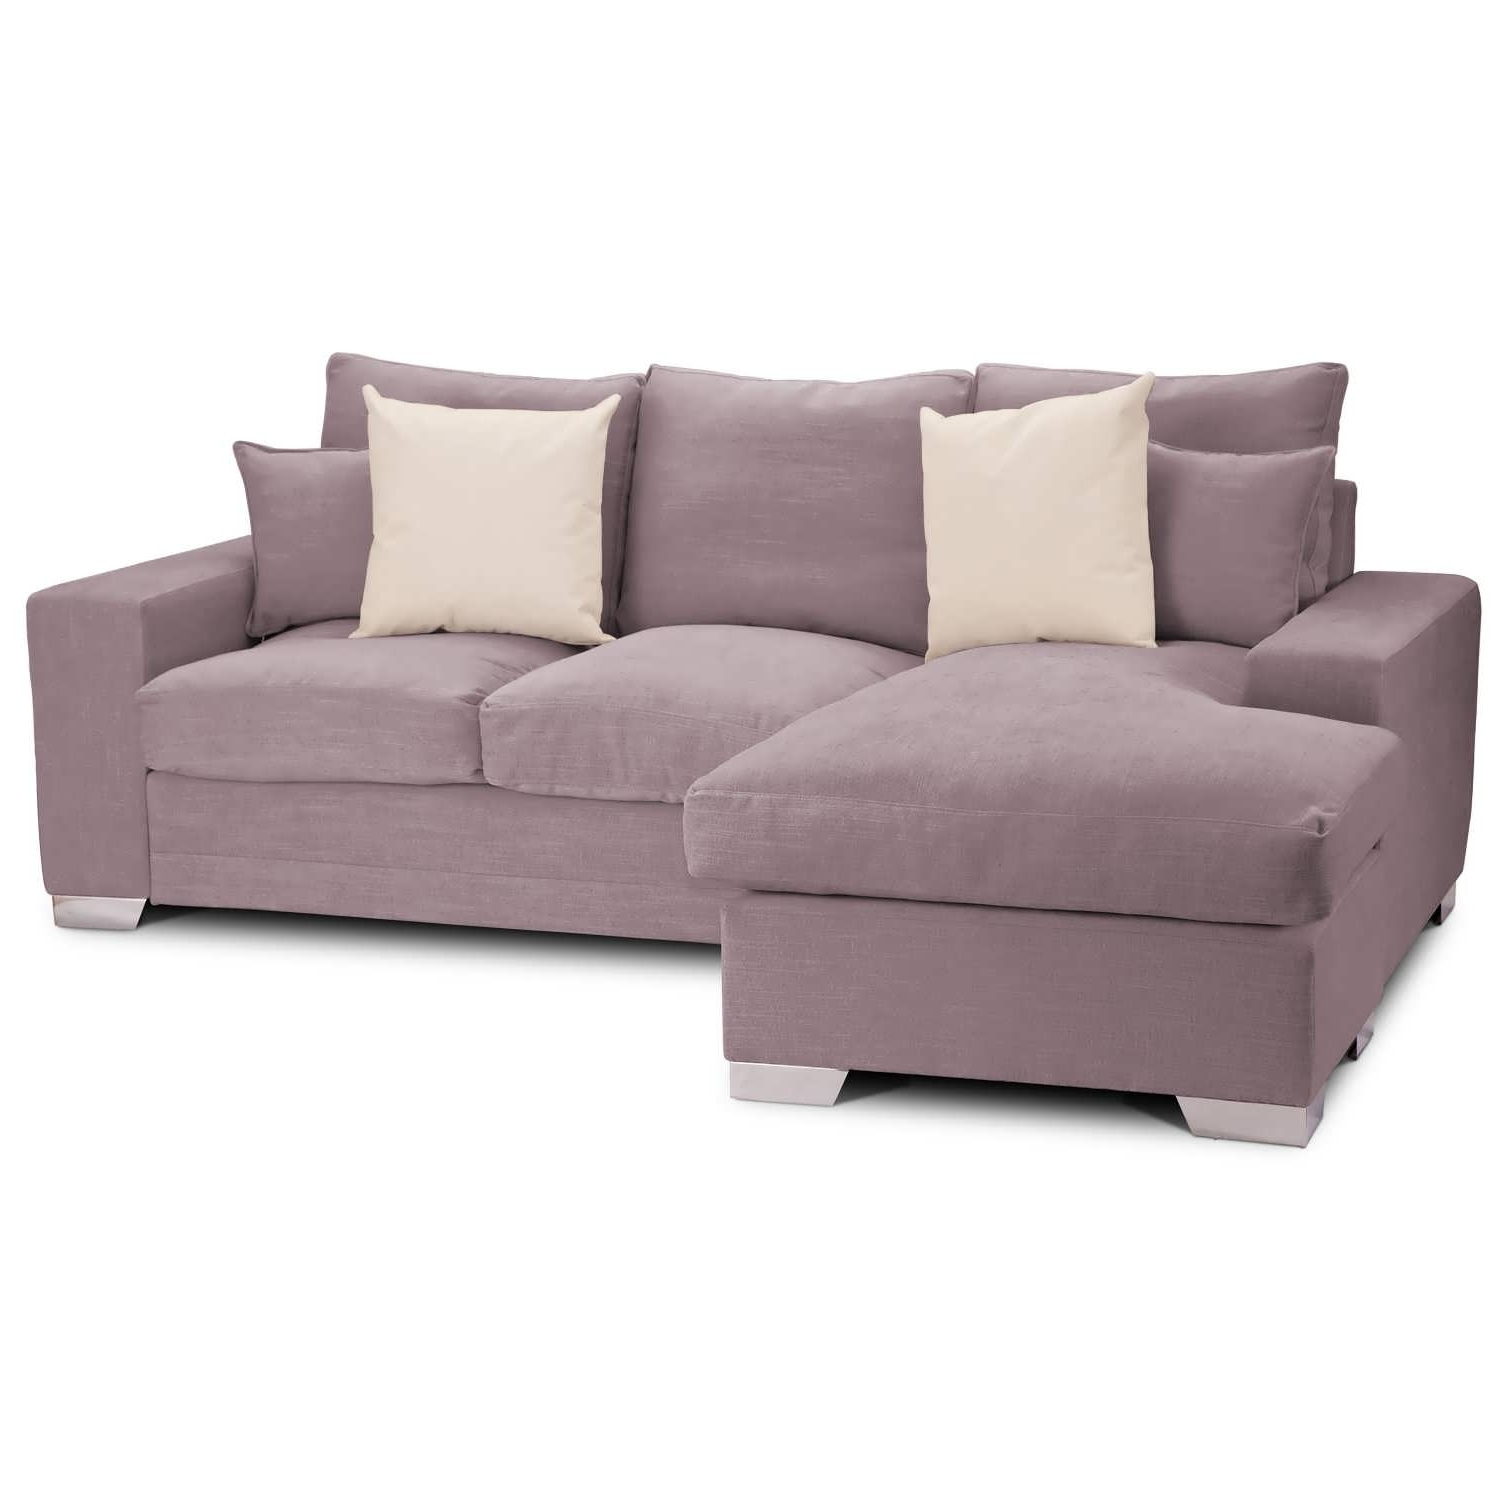 Small Chaise Sofas Inside Best And Newest Sofa : Gray Sofa Set Sectional Sofas Small Chaise Sofa Gray (View 14 of 15)